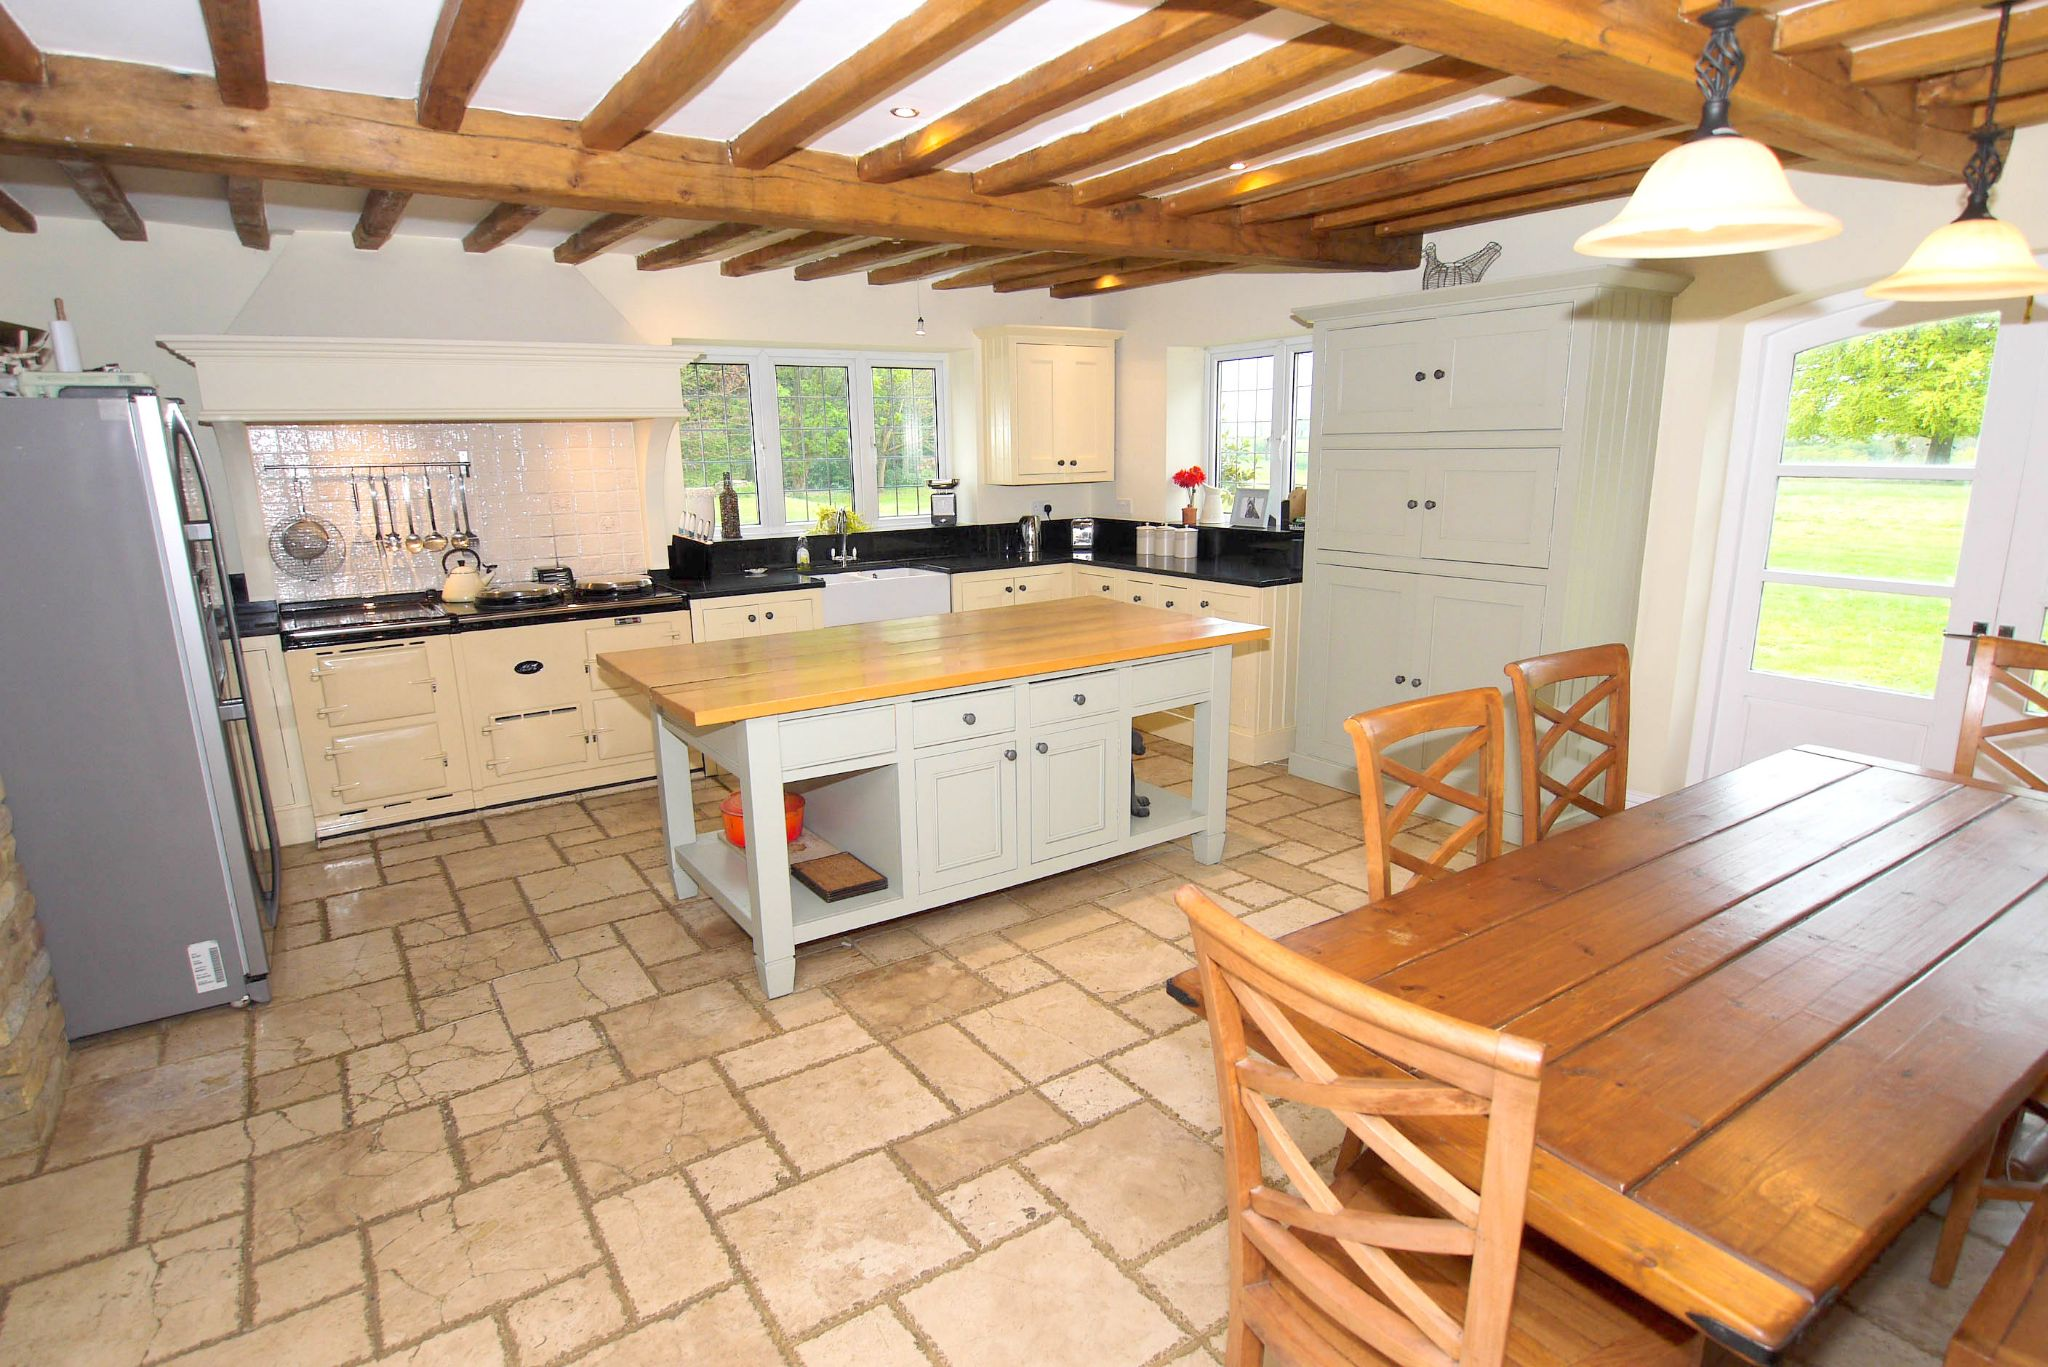 6 bedroom detached house For Sale in Sevenoaks - Photograph 4